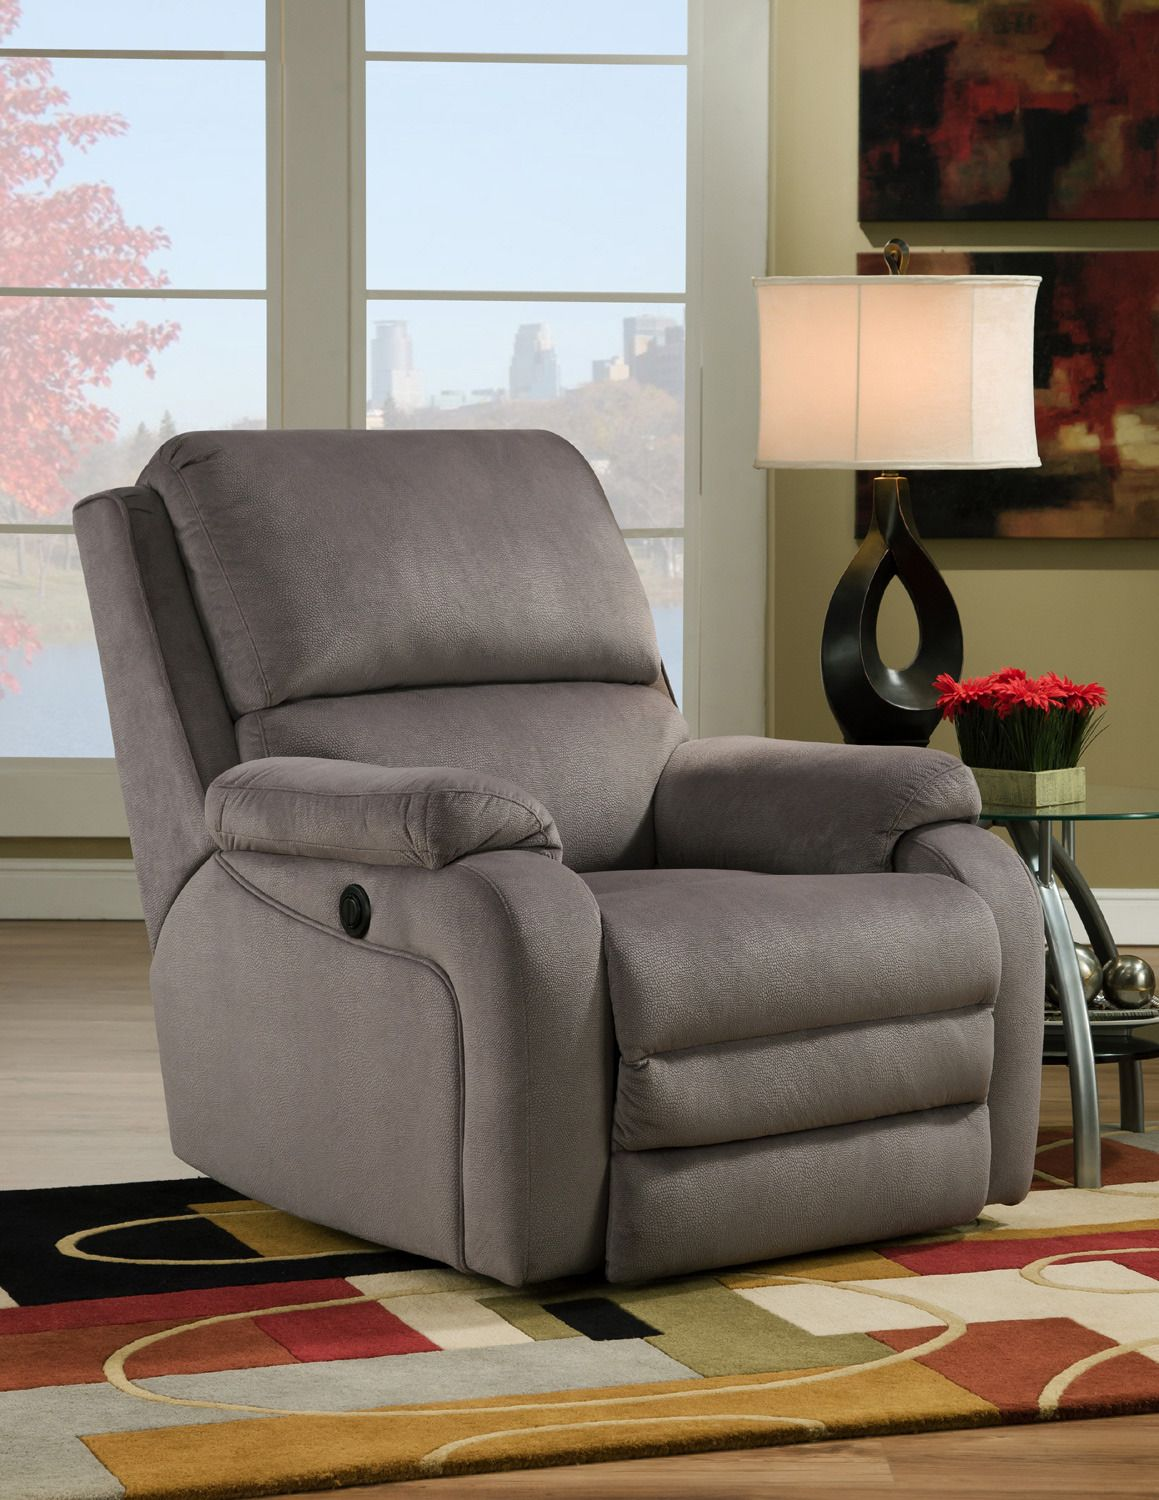 Ovation Wall Hugger Recliner Southern Motion Furniture